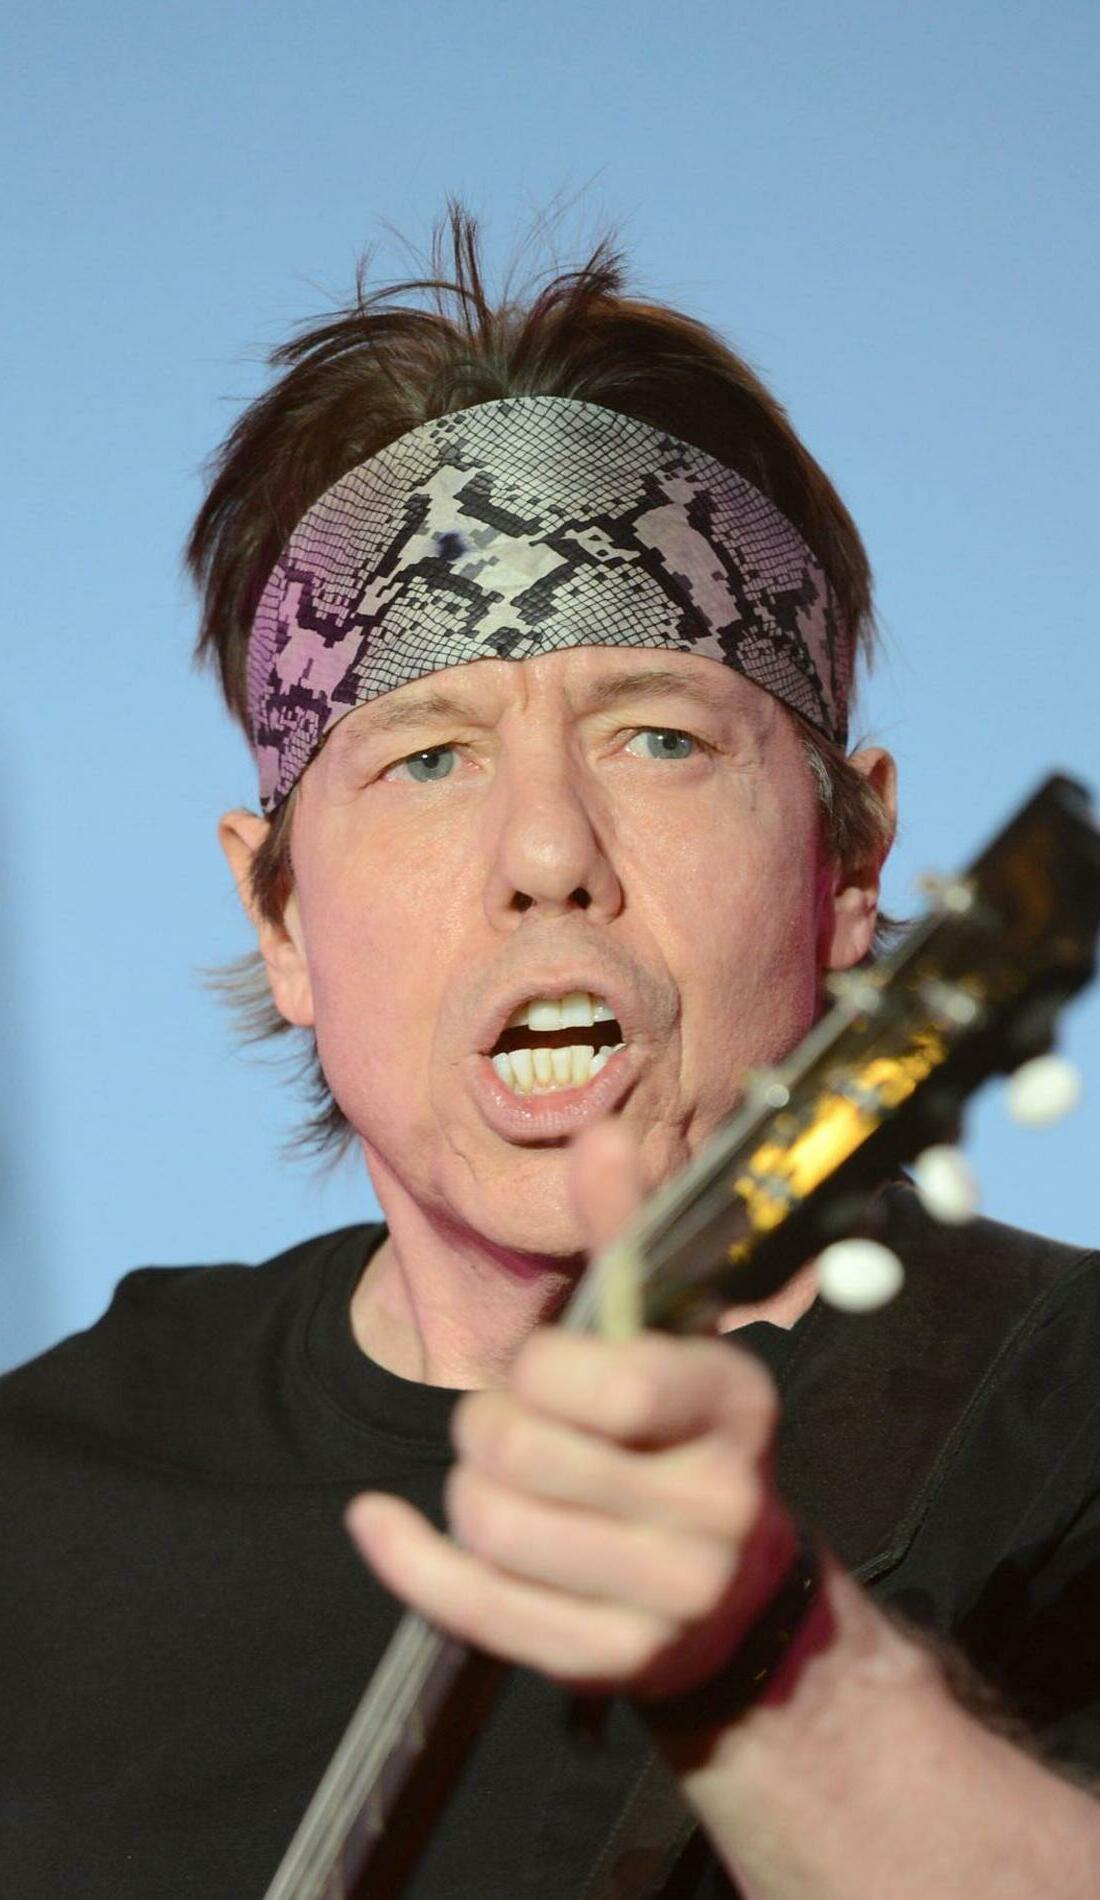 A George Thorogood live event